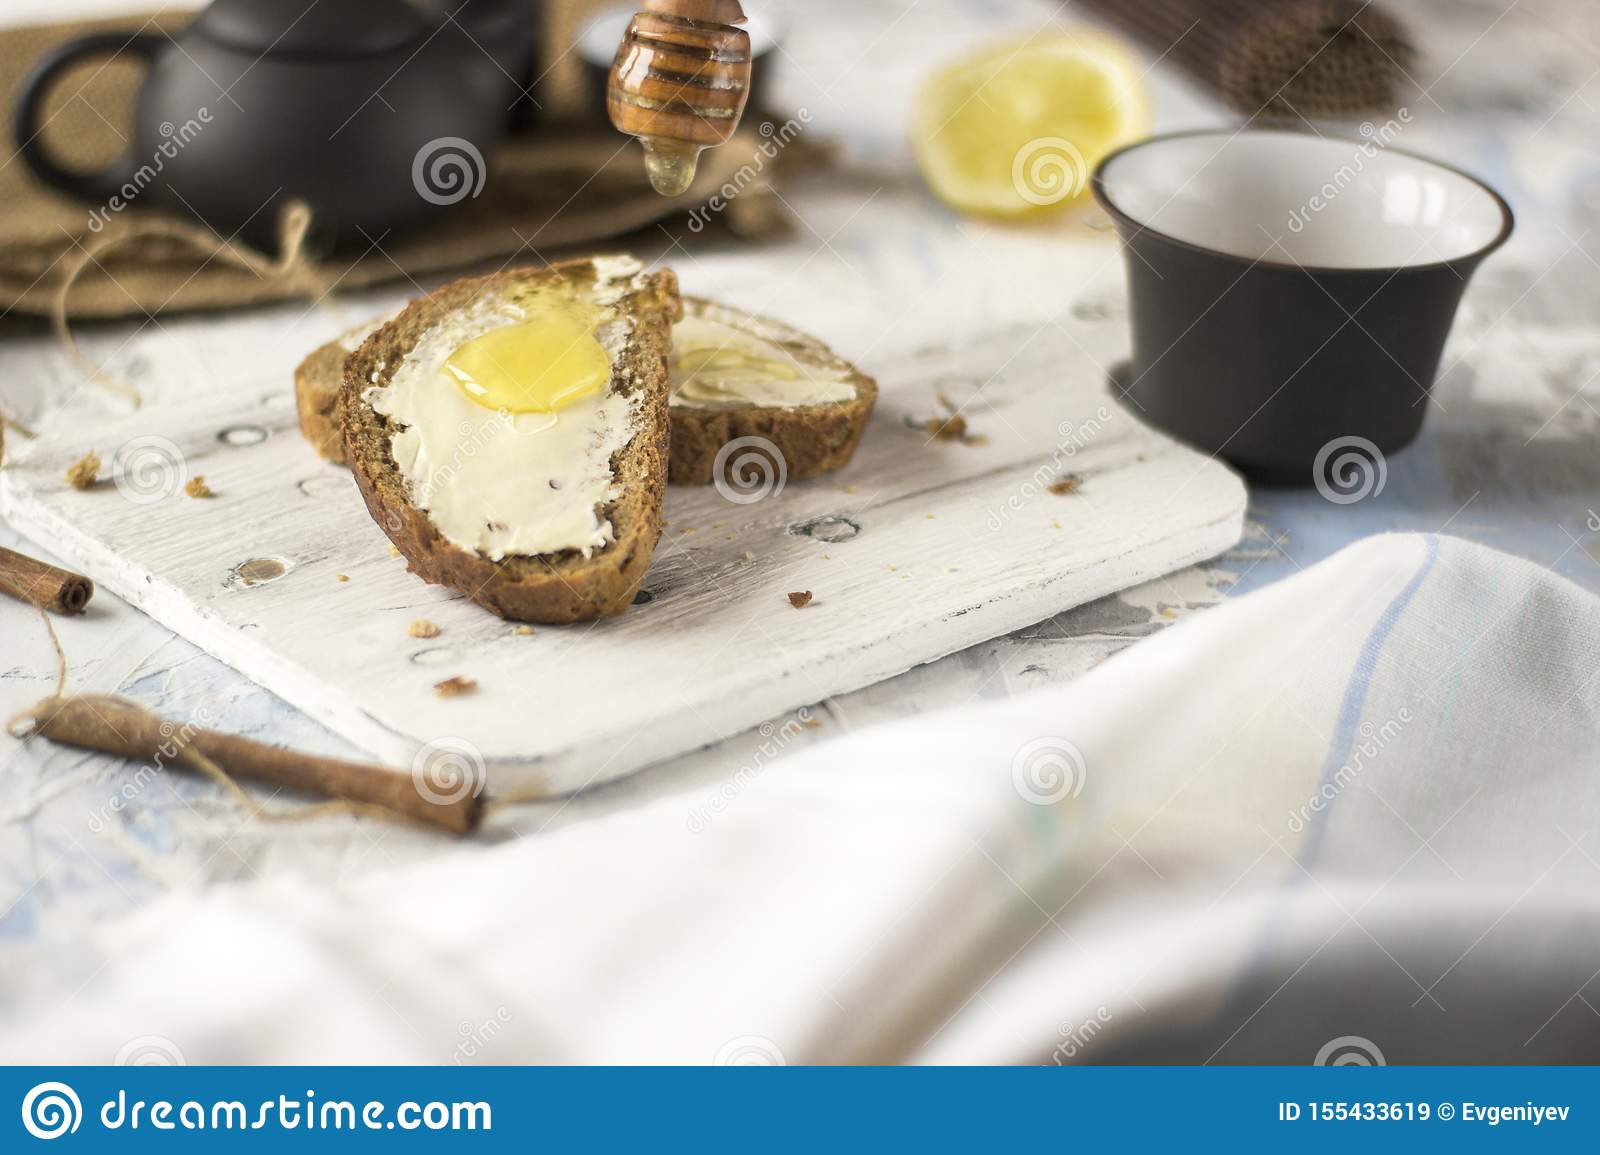 Pieces of bread with butter and honey